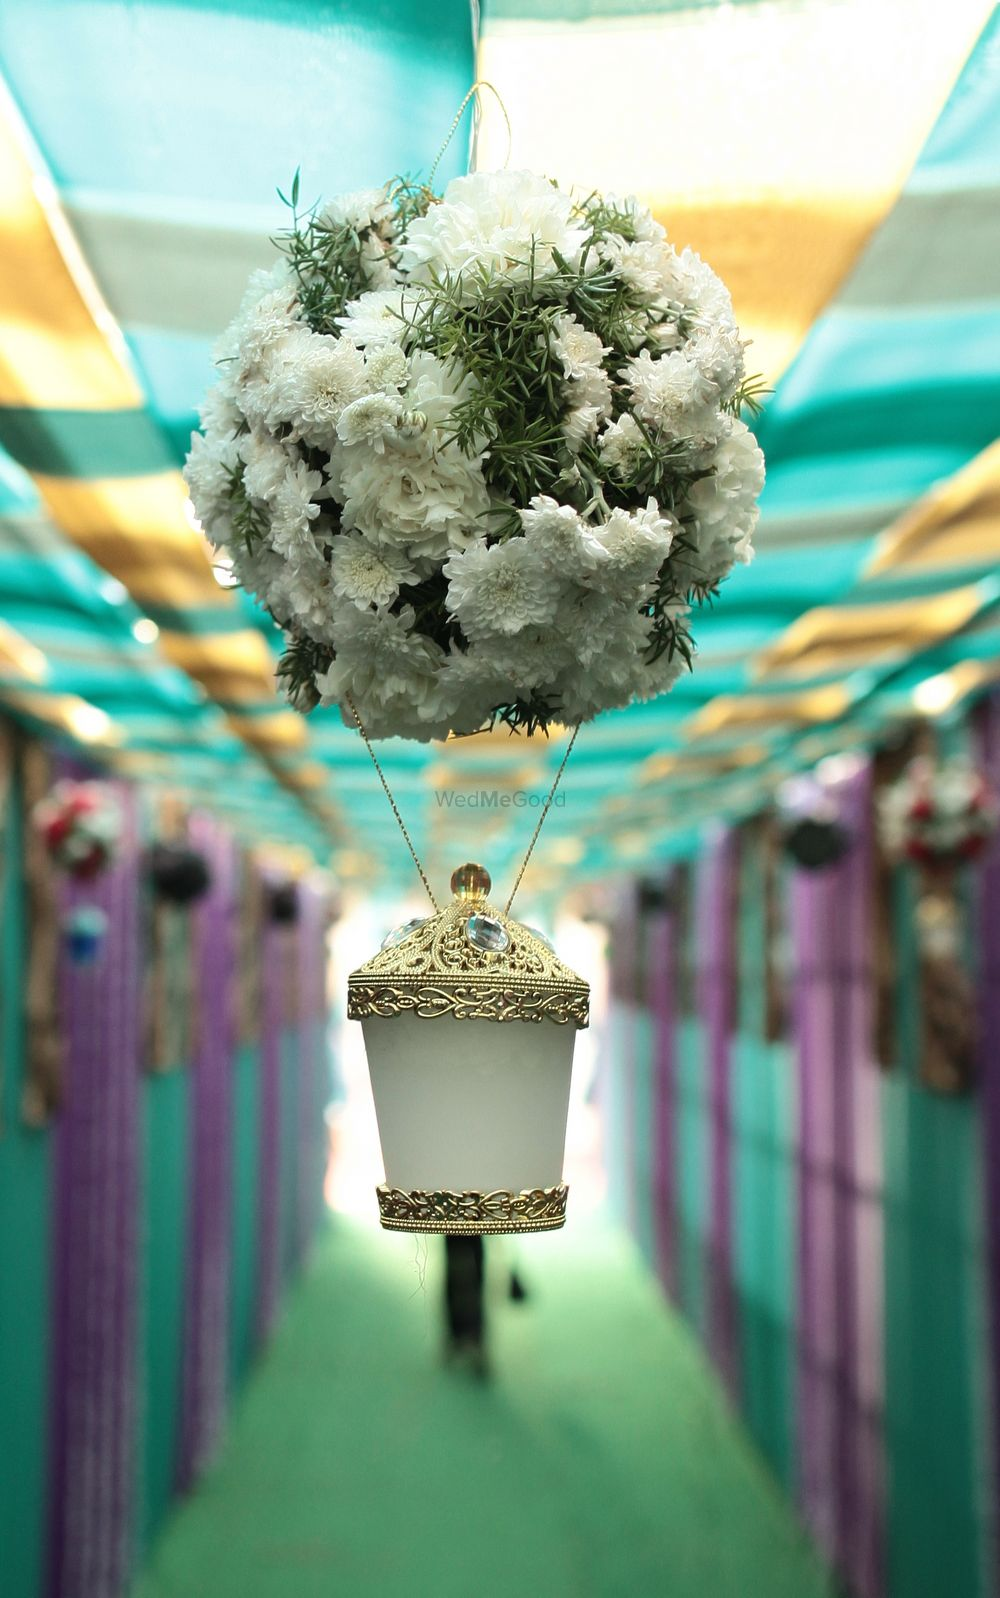 Photo of Hanging White and Gold Floral Decor